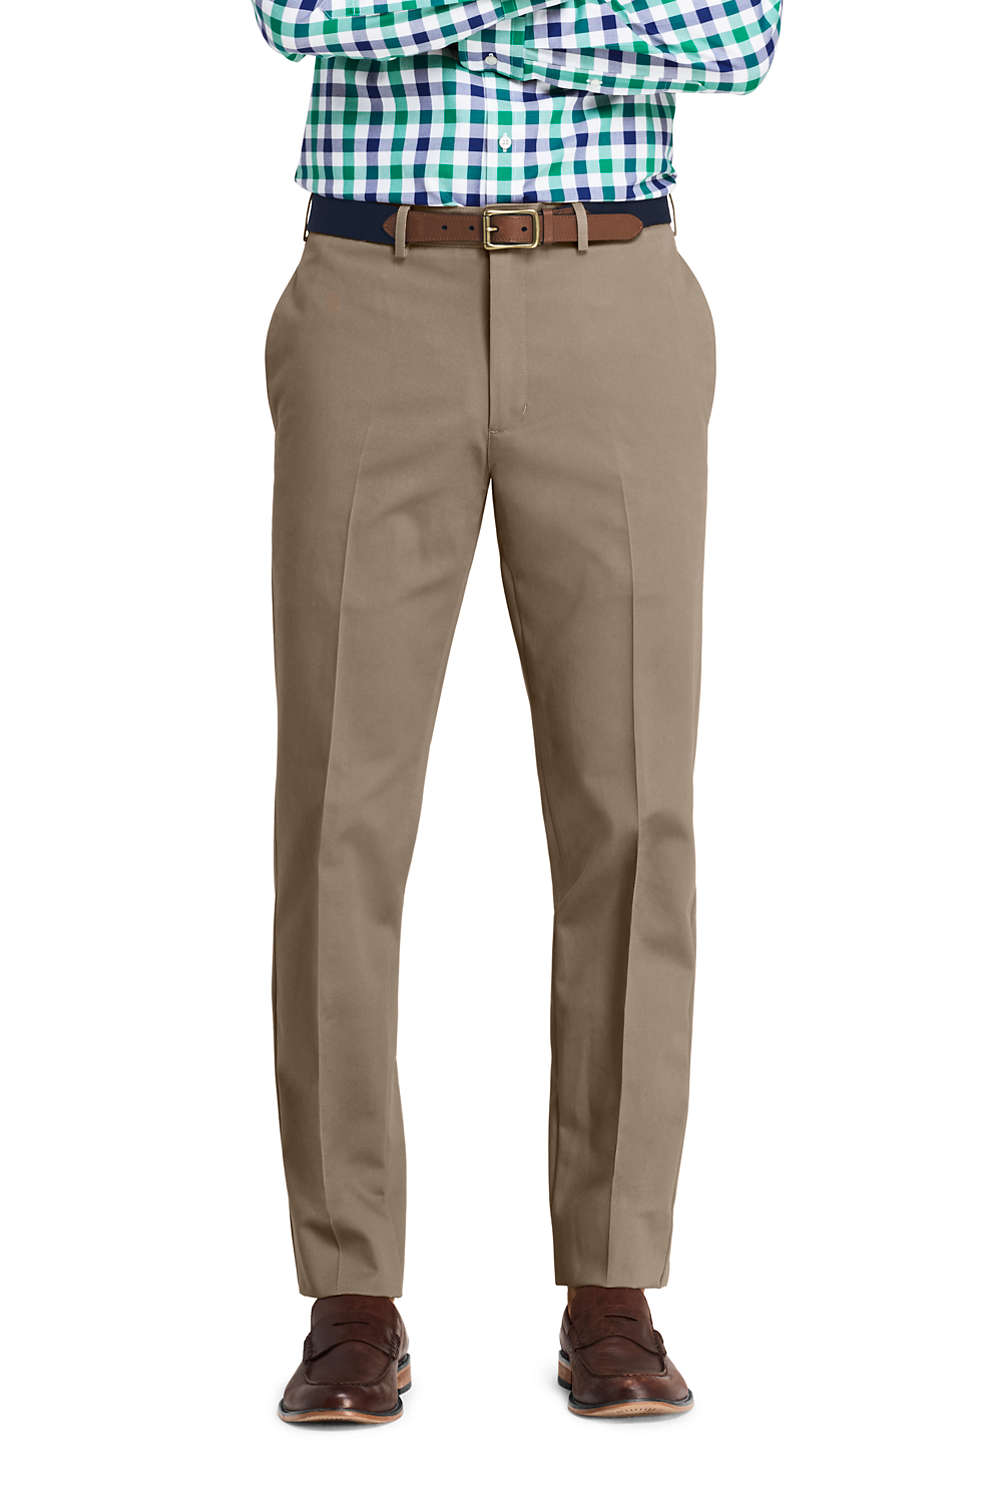 465796b1dbc Men s Plain Front Tailored Fit No Iron Chino Pants